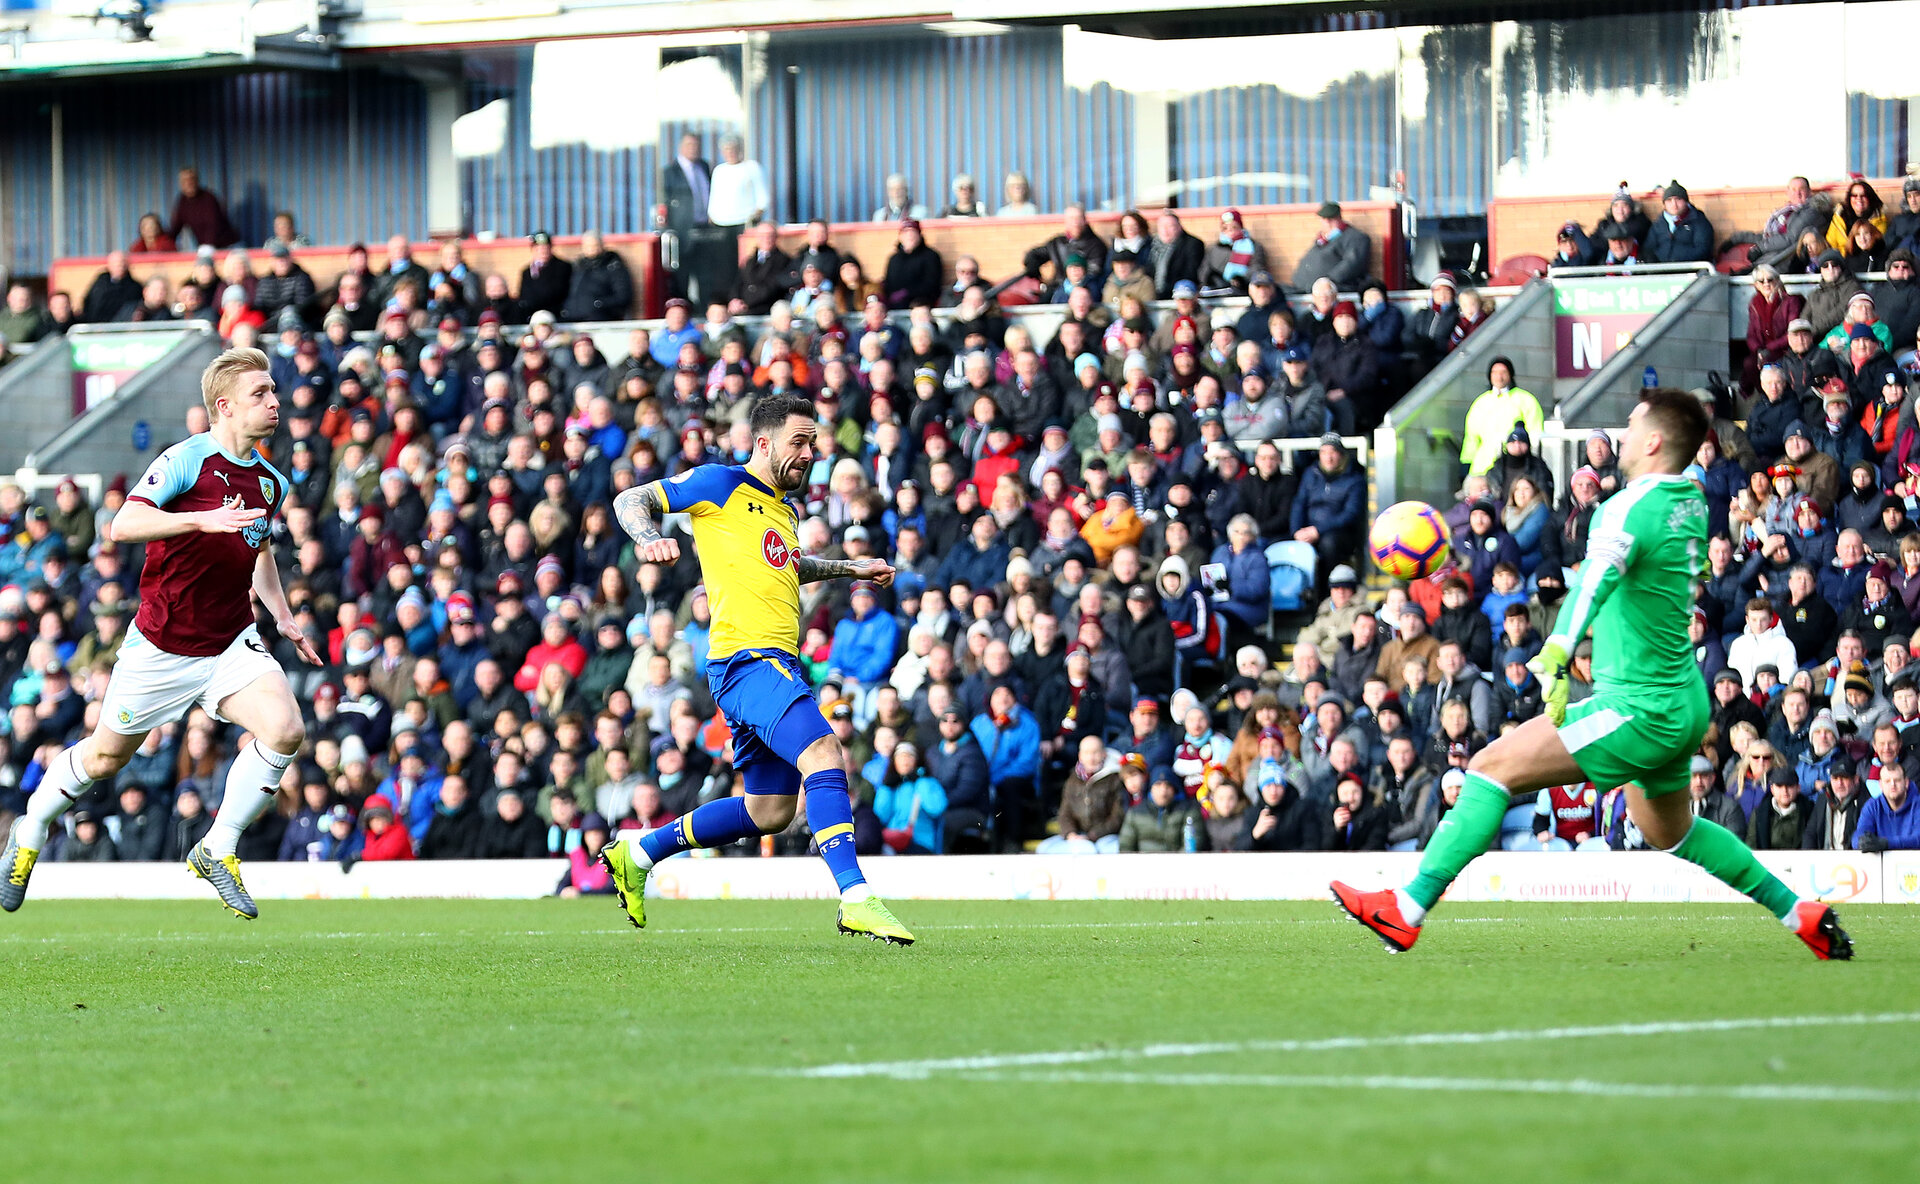 BURNLEY, ENGLAND - FEBRUARY 02: Danny Ings of Southampton is denied by Tom Heaton of Burnley during the Premier League match between Burnley FC and Southampton FC at Turf Moor on February 02, 2019 in Burnley, United Kingdom. (Photo by Matt Watson/Southampton FC via Getty Images)